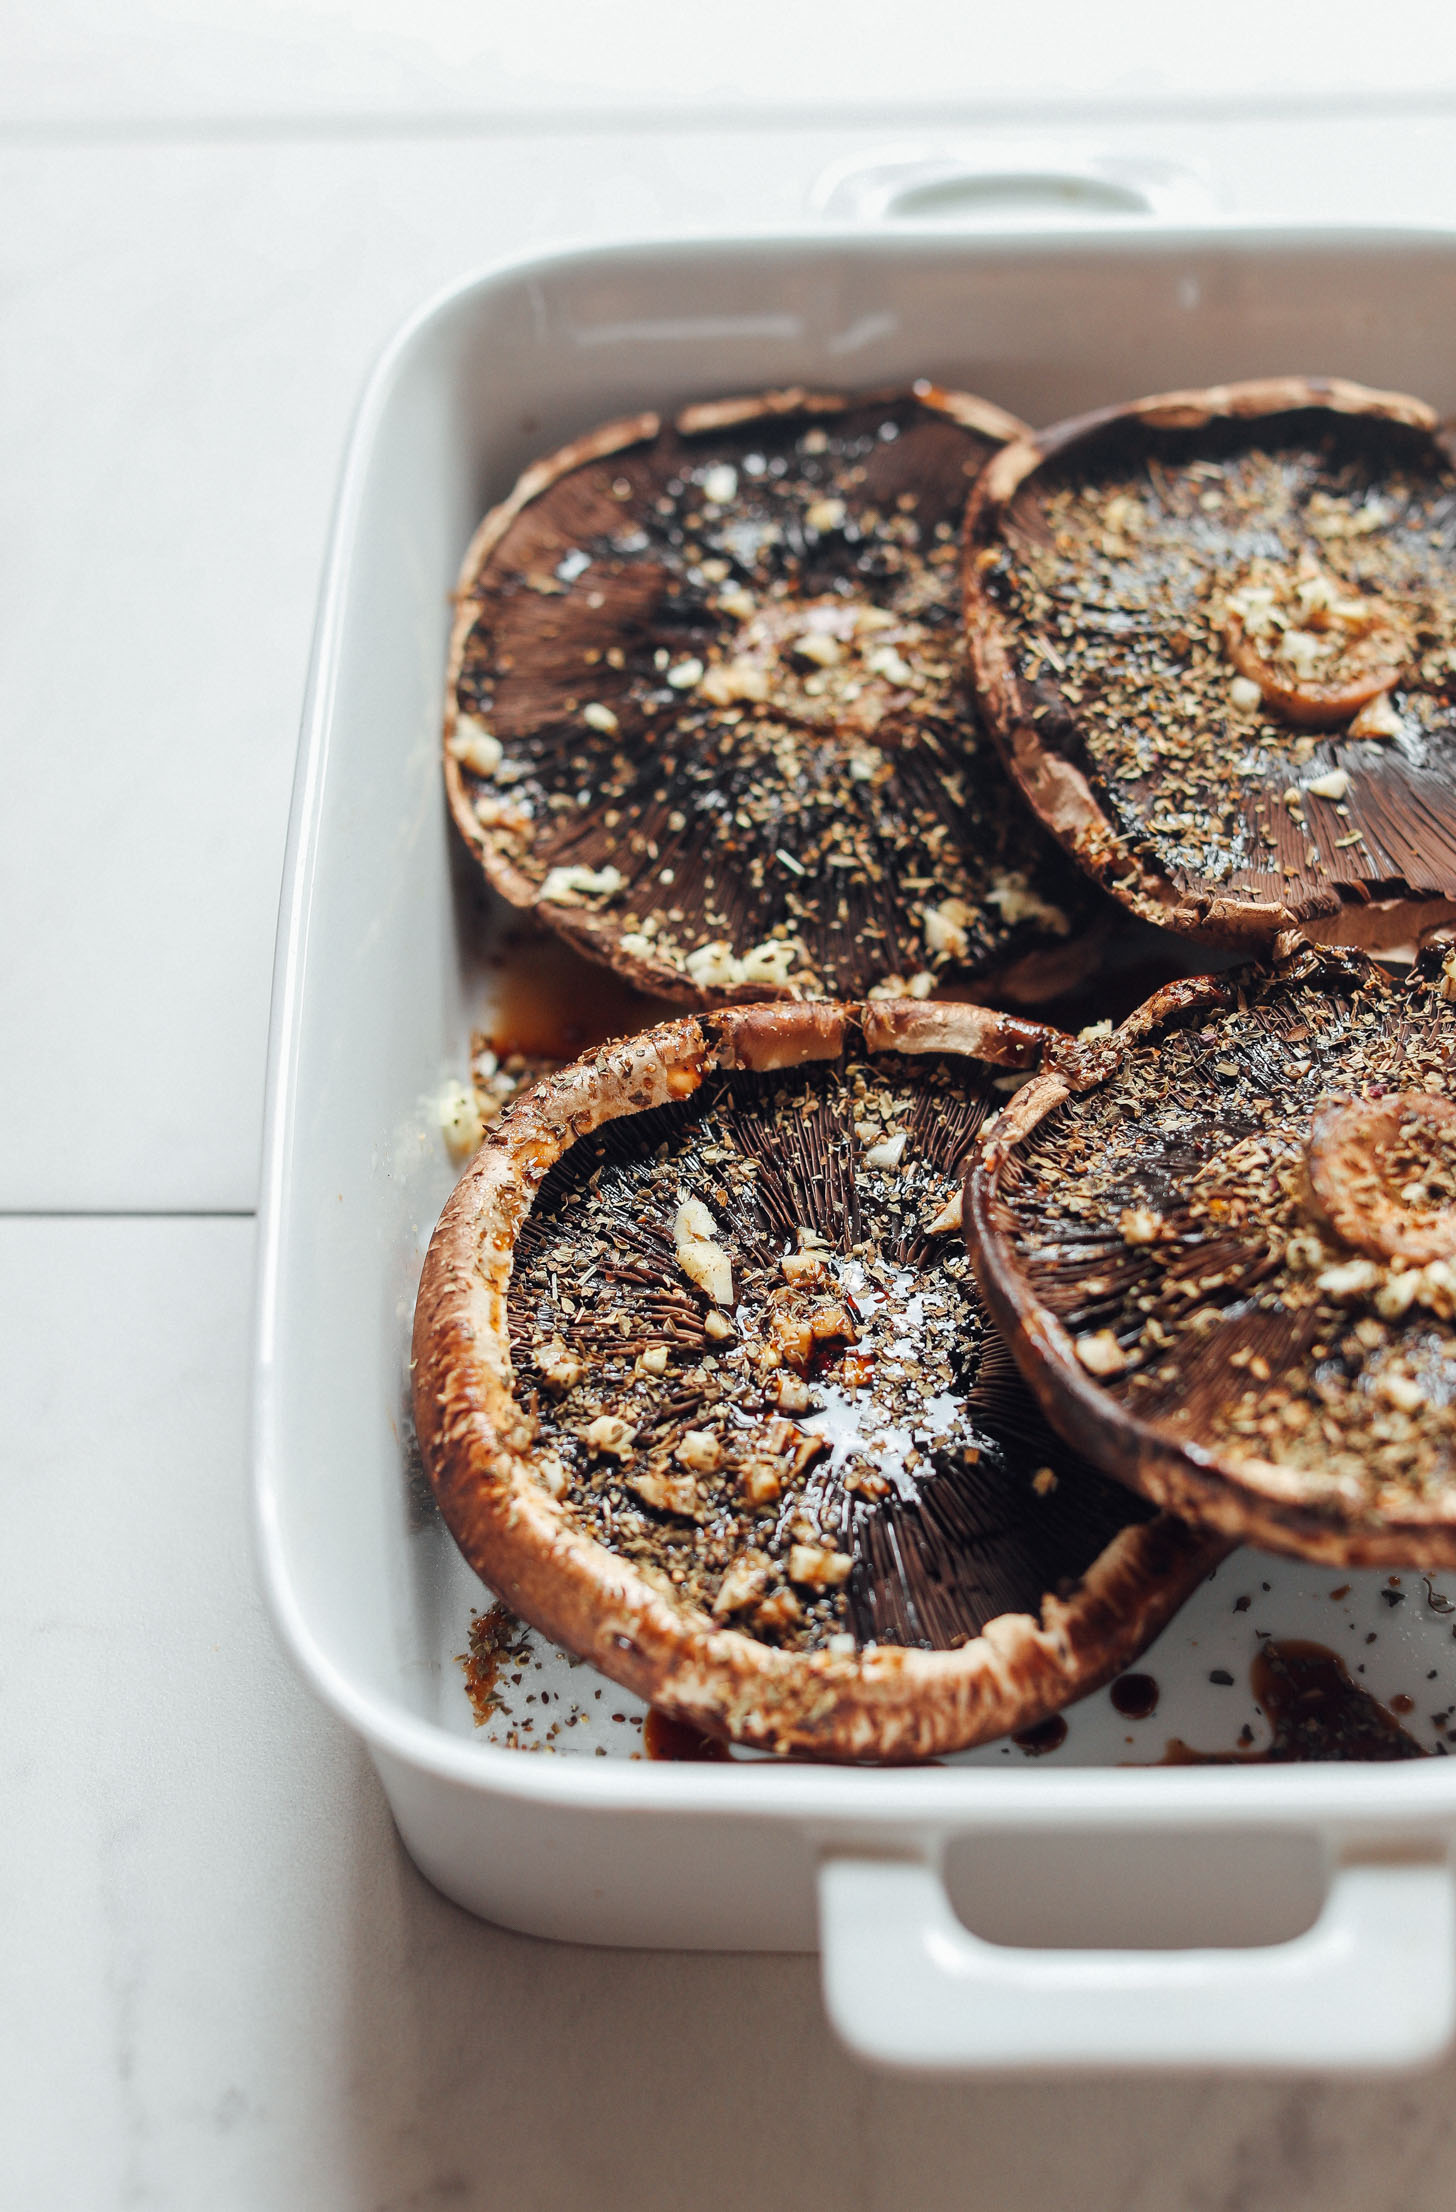 Baking pan filled with Balsamic Marinated Portobello Mushrooms topped with garlic and herbs